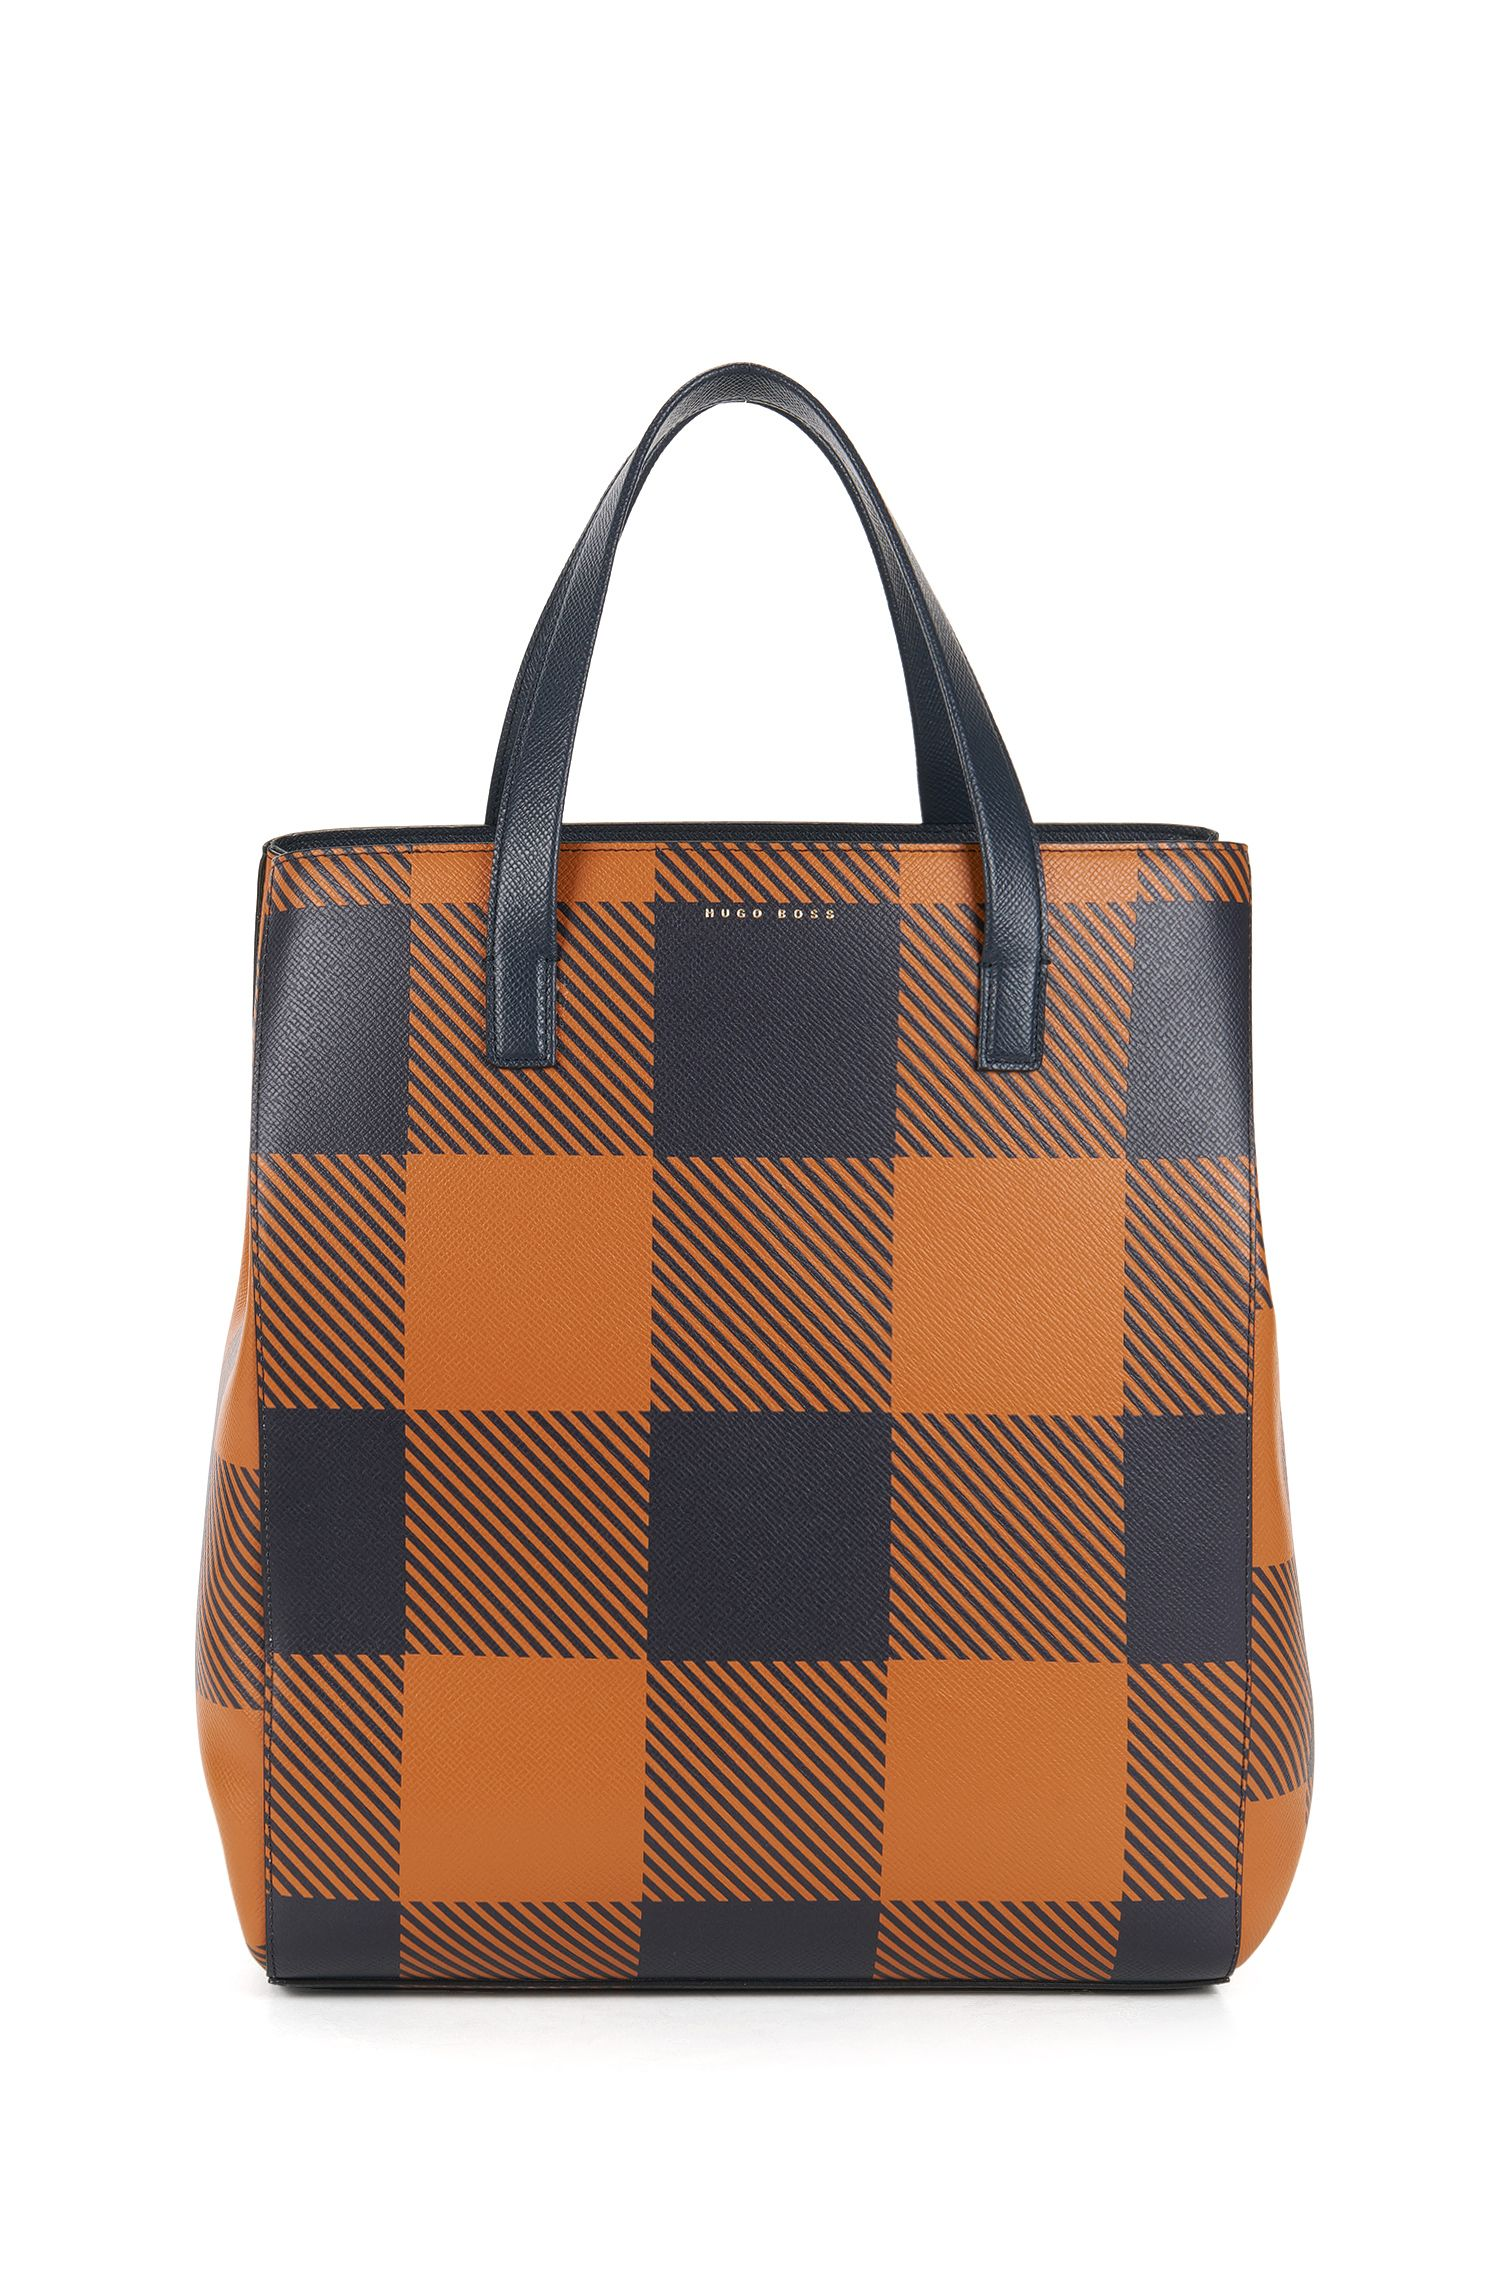 BOSS Bespoke tote bag in printed leather